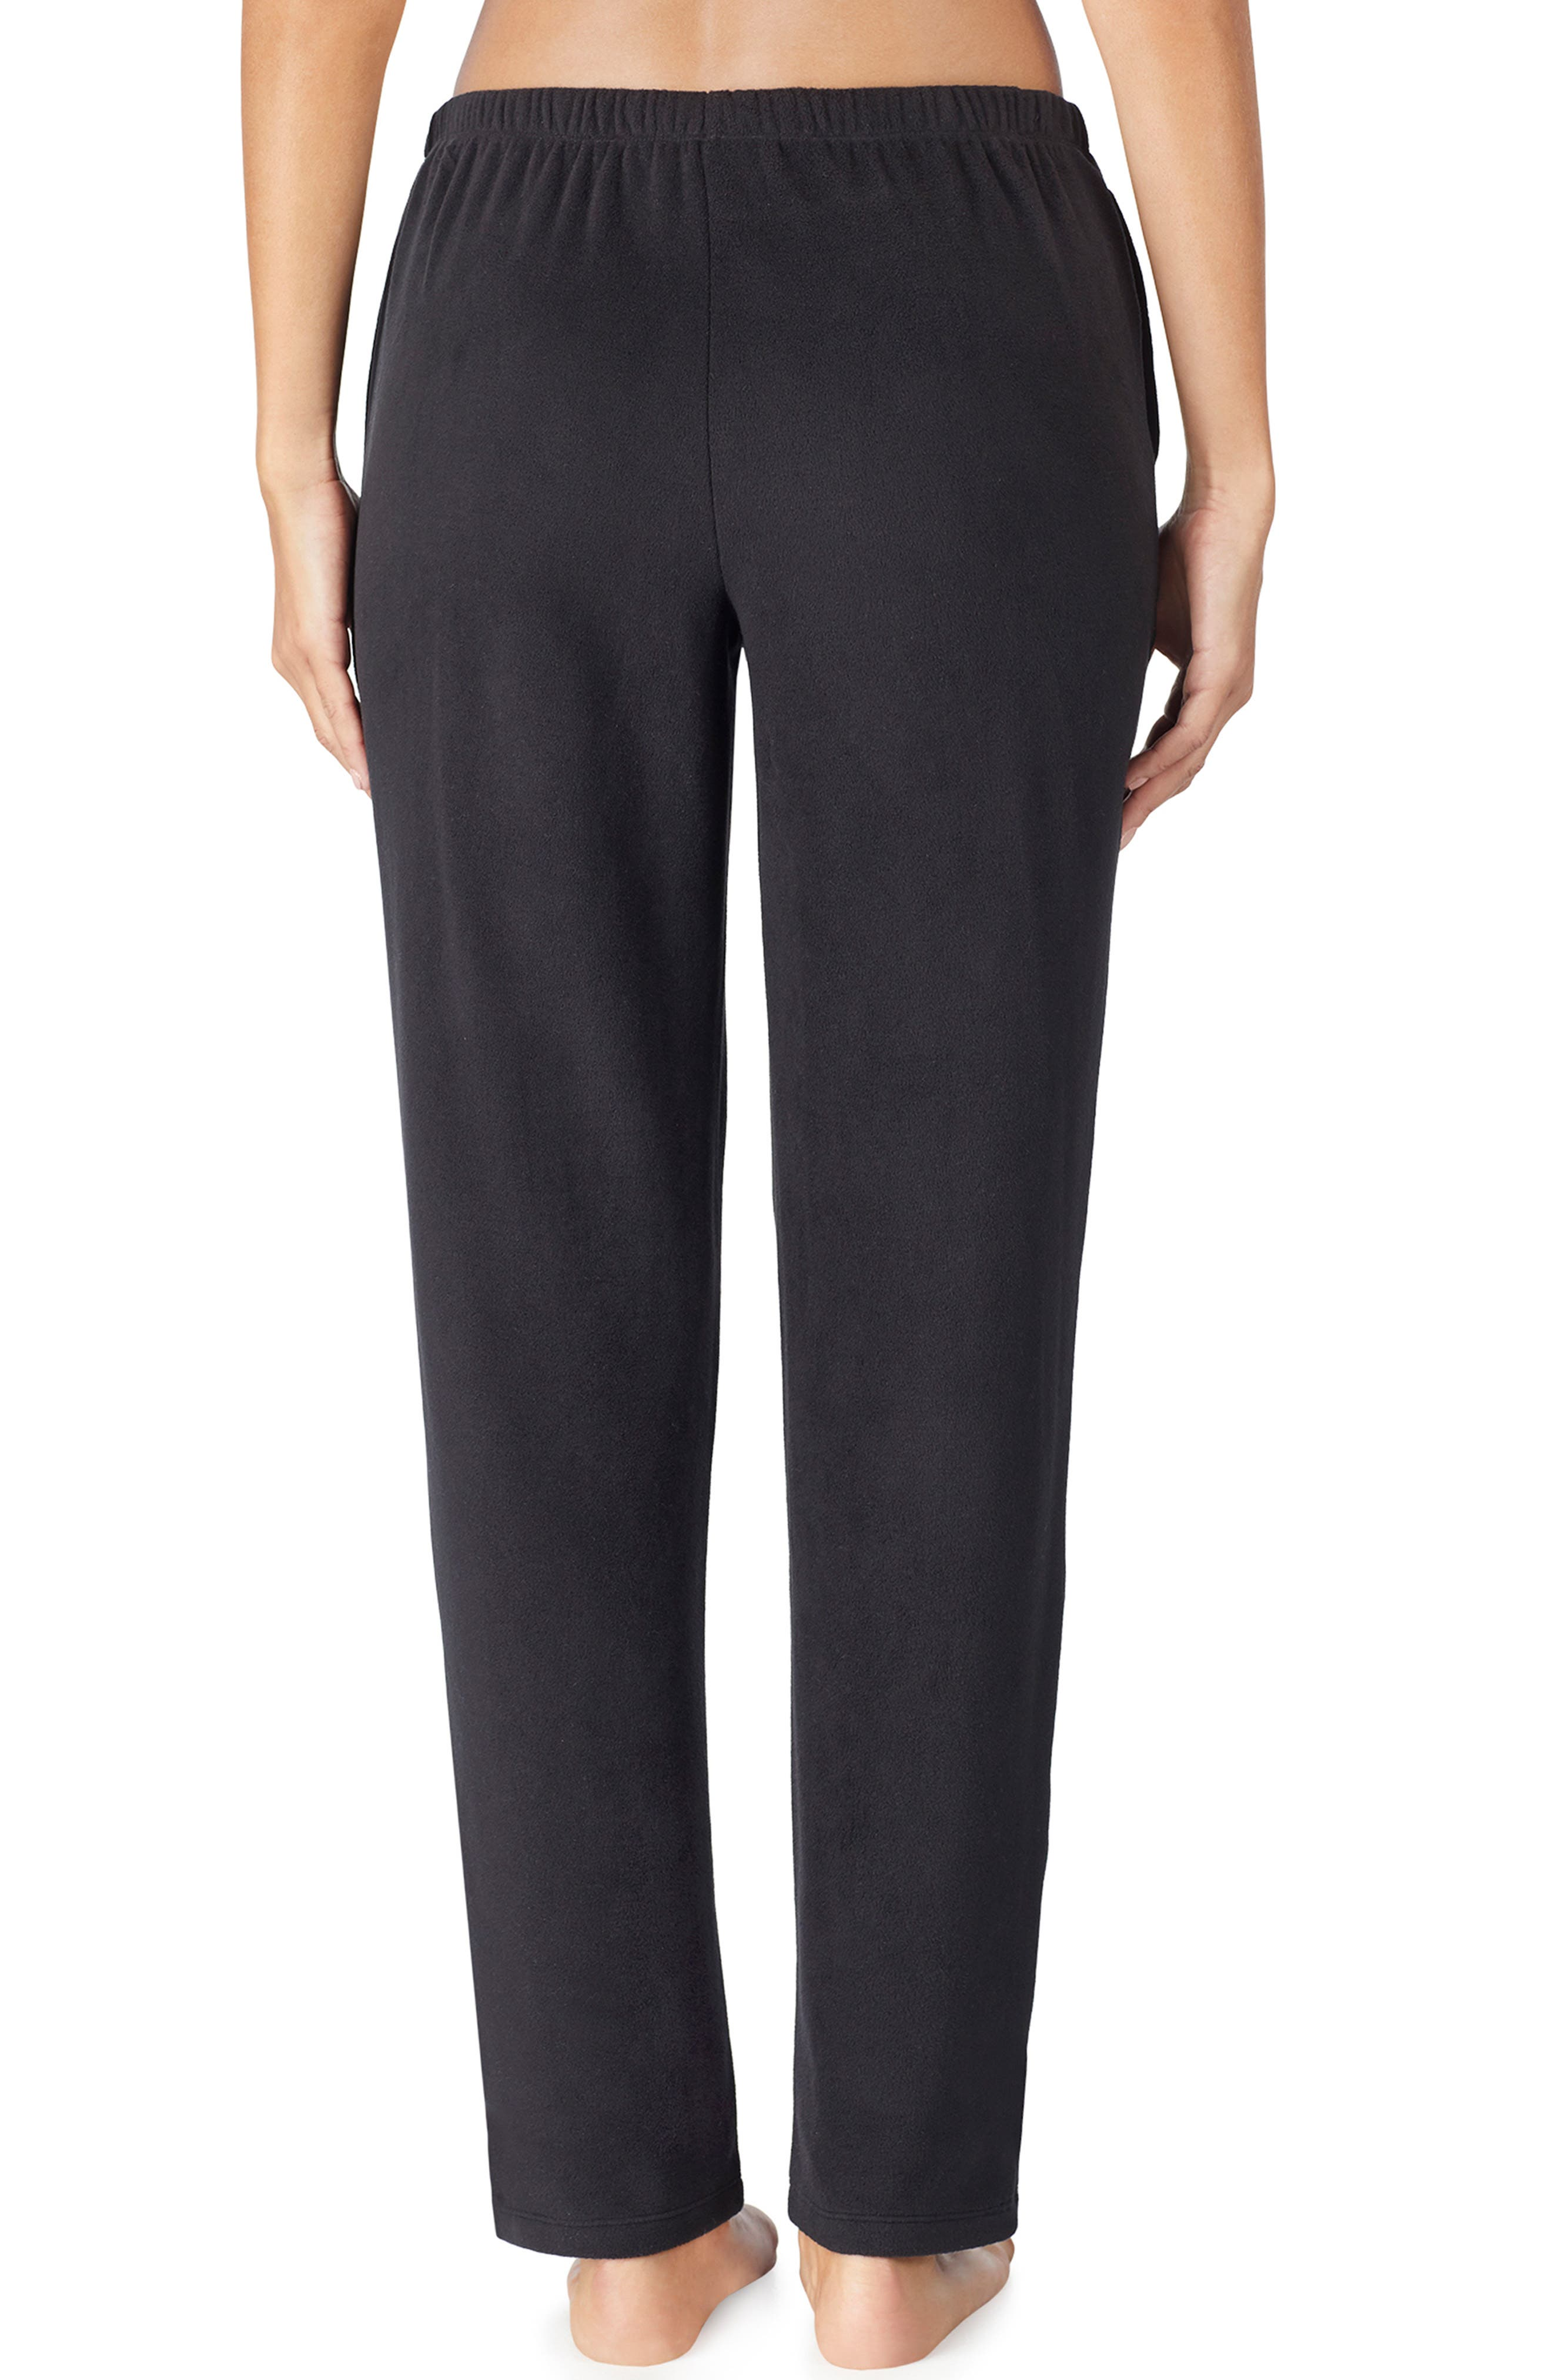 LAUREN RALPH LAUREN, Lounge Pants, Alternate thumbnail 2, color, BLACK